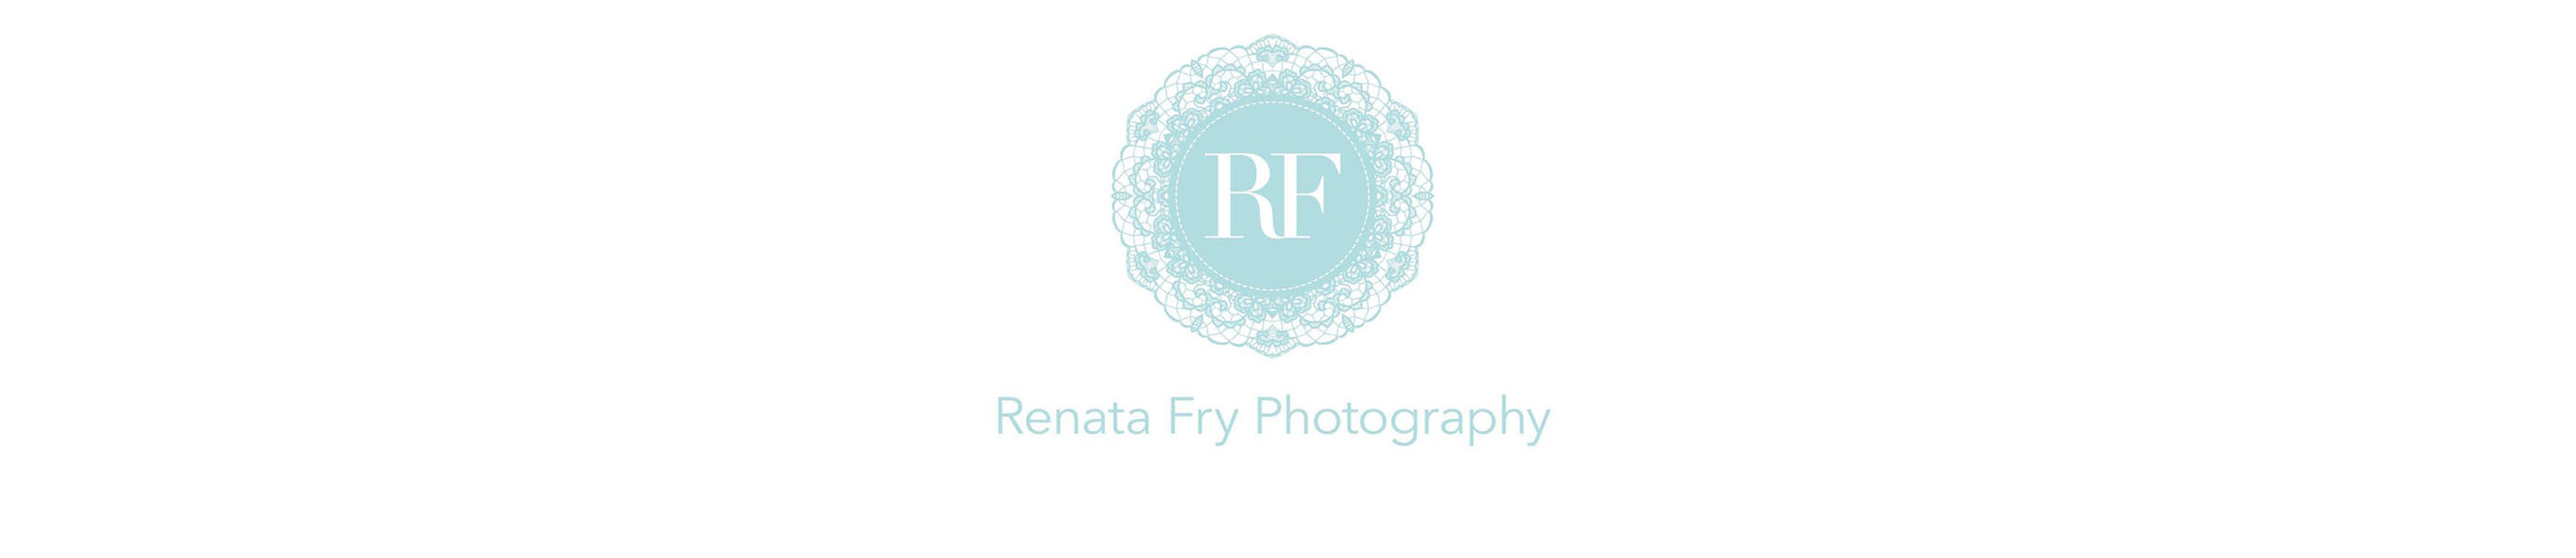 renatafryphotography.co.uk